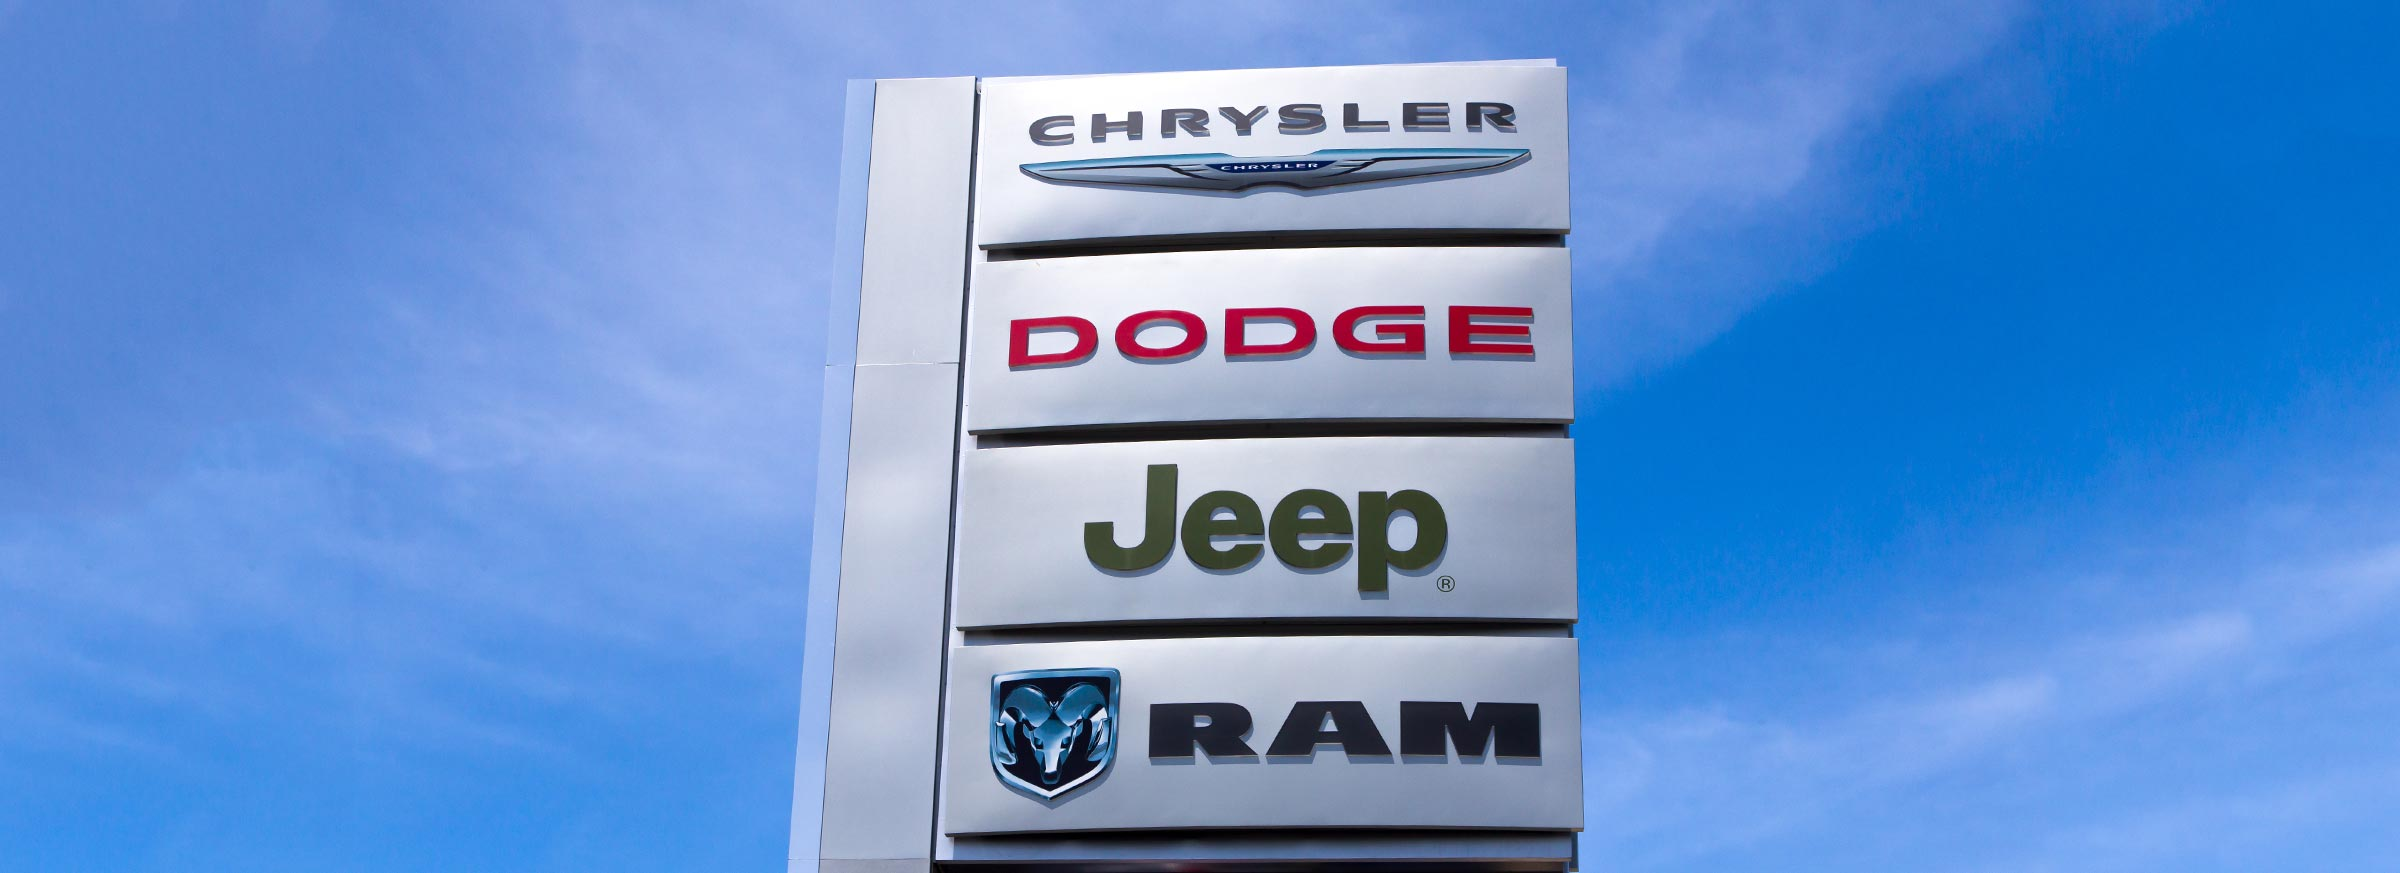 Chrysler Dodge Jeep RAM Watsonville Directions